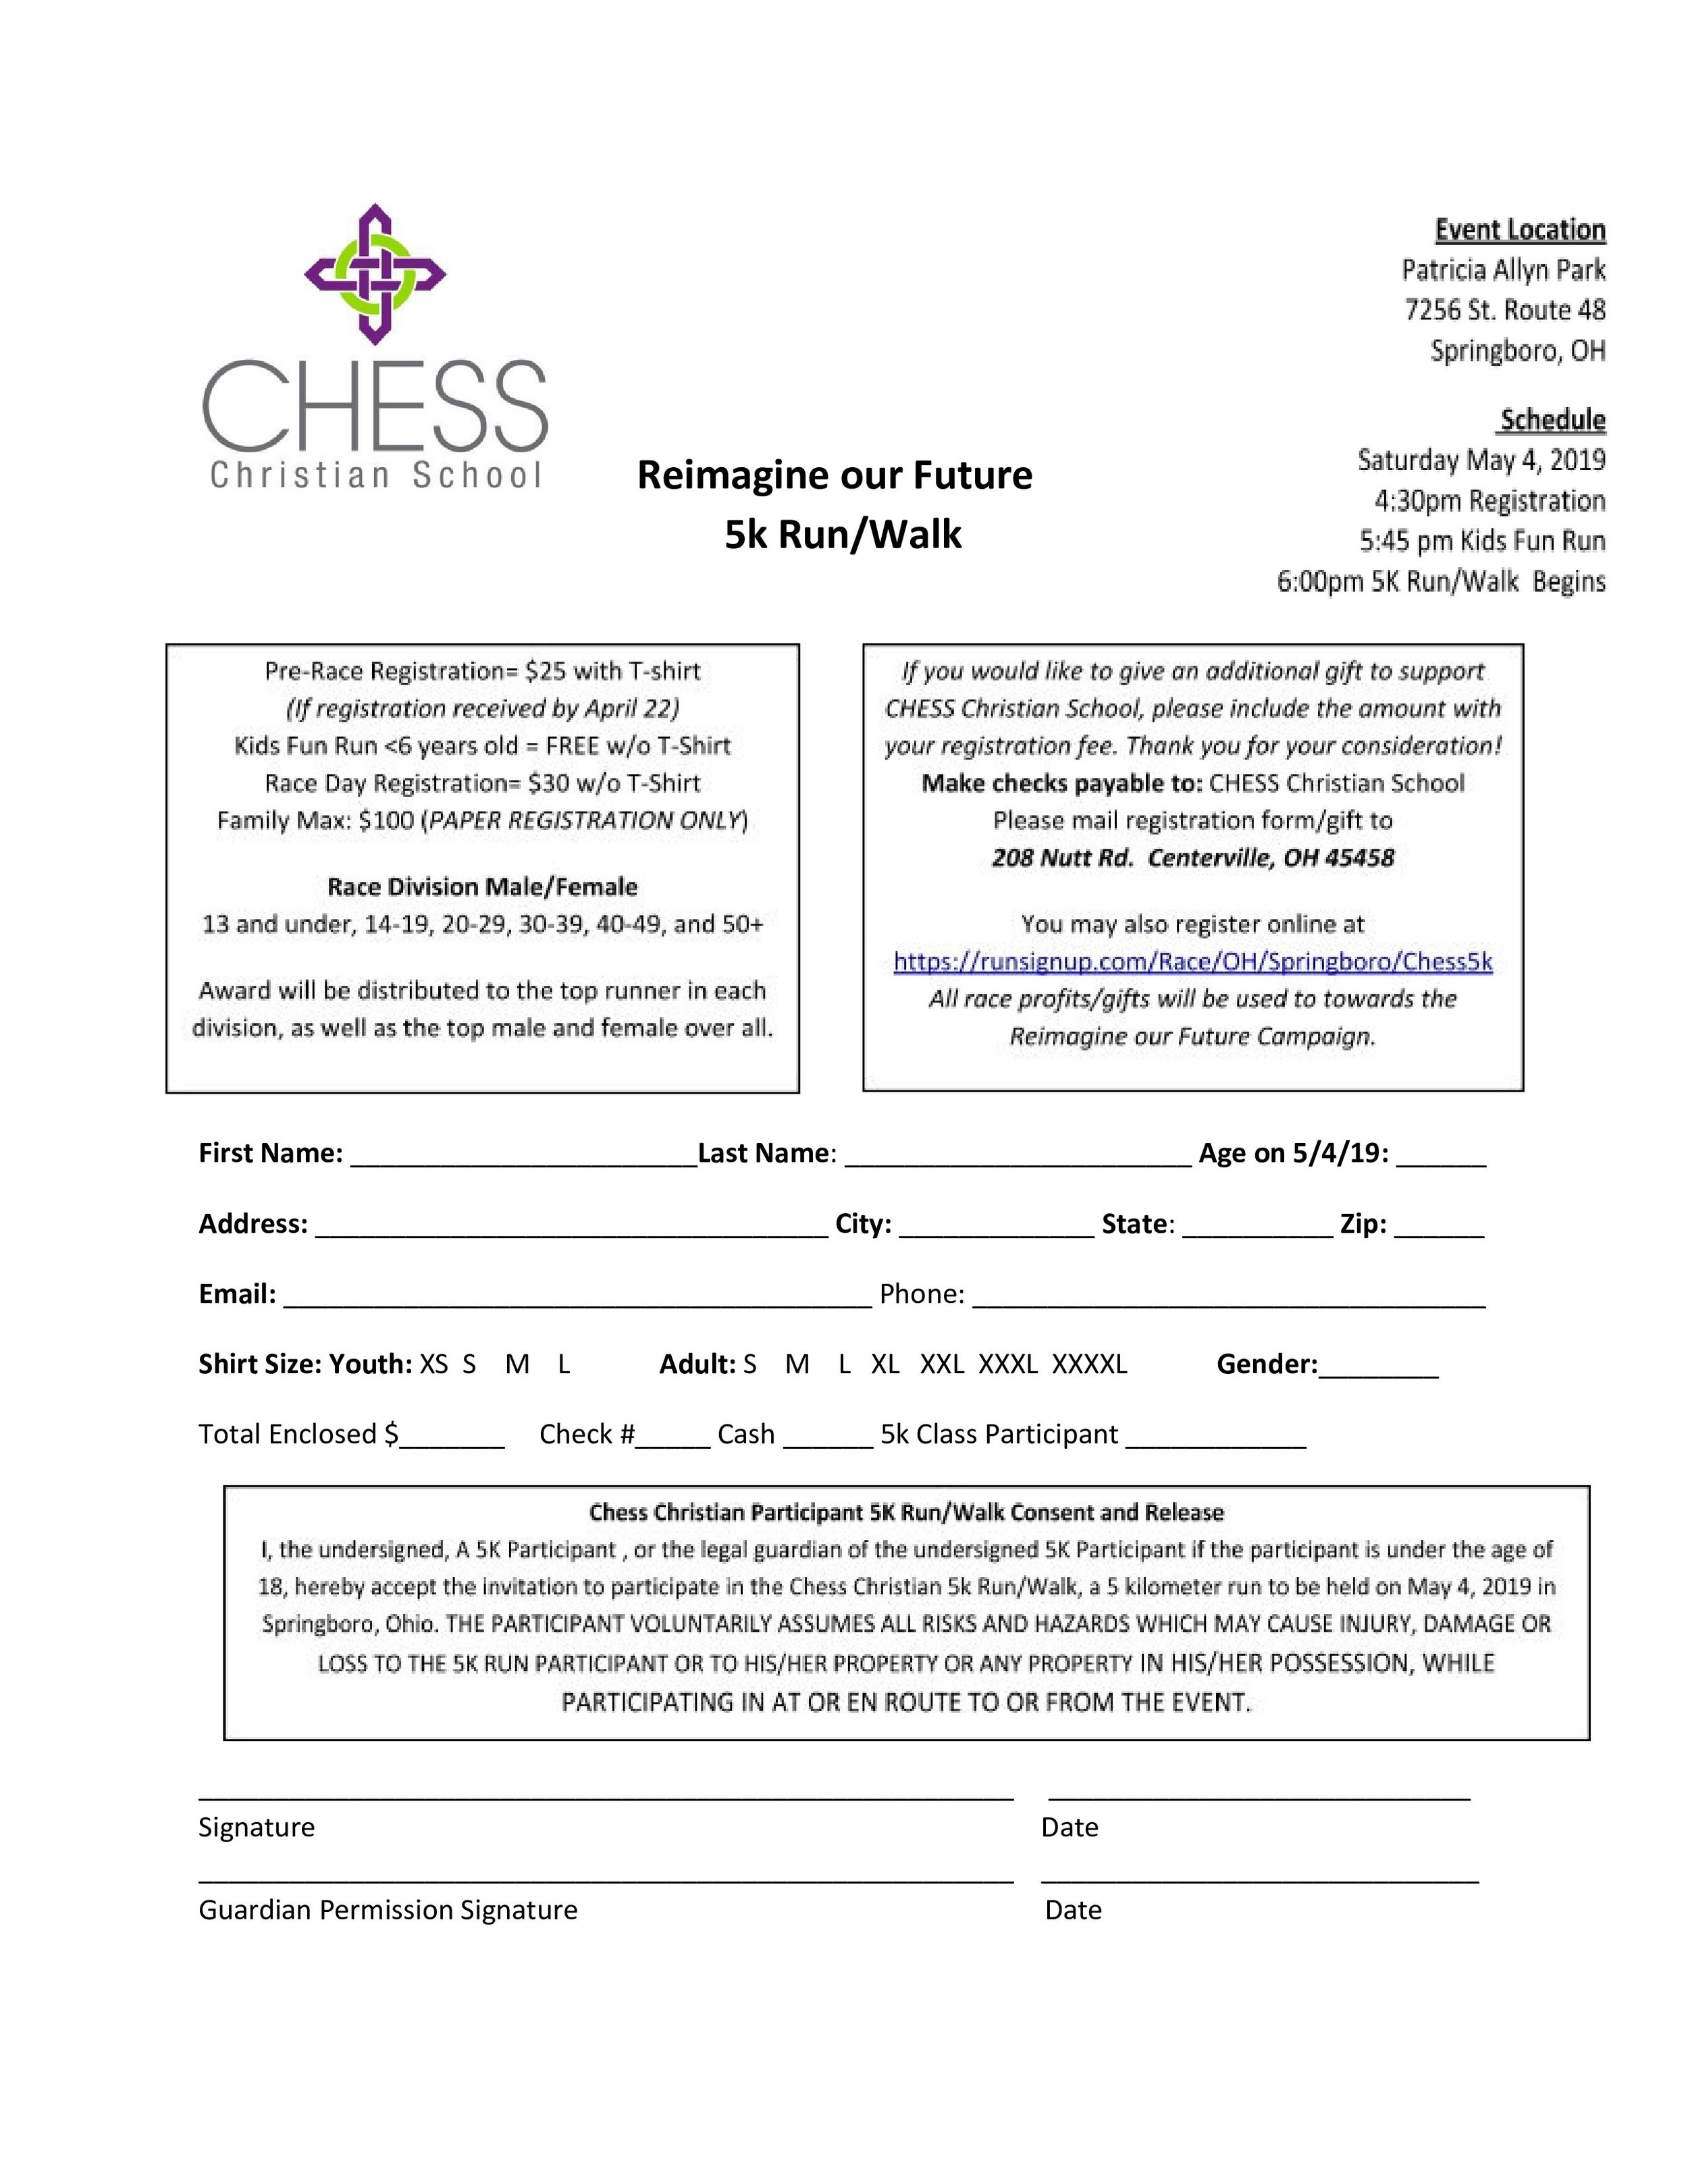 Chess 5K Registration Form.jpg